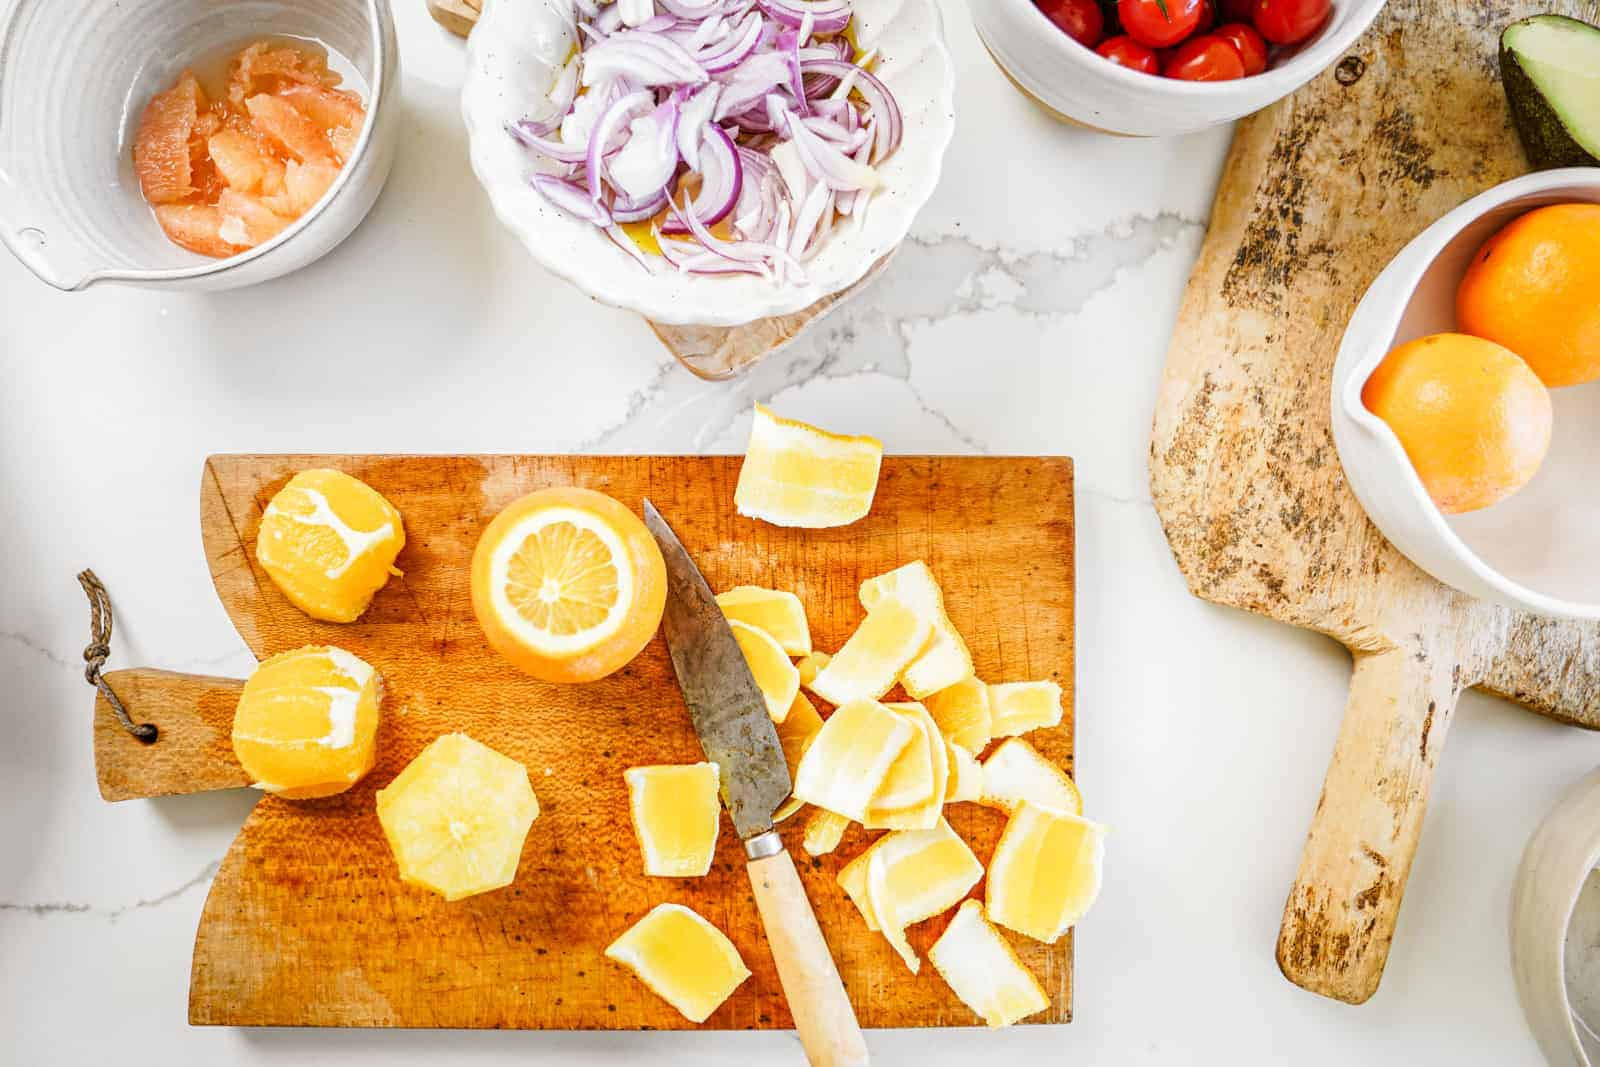 Cutting board of oranges being cut, surrounded by bowls of ingredients for roasted potato salad.